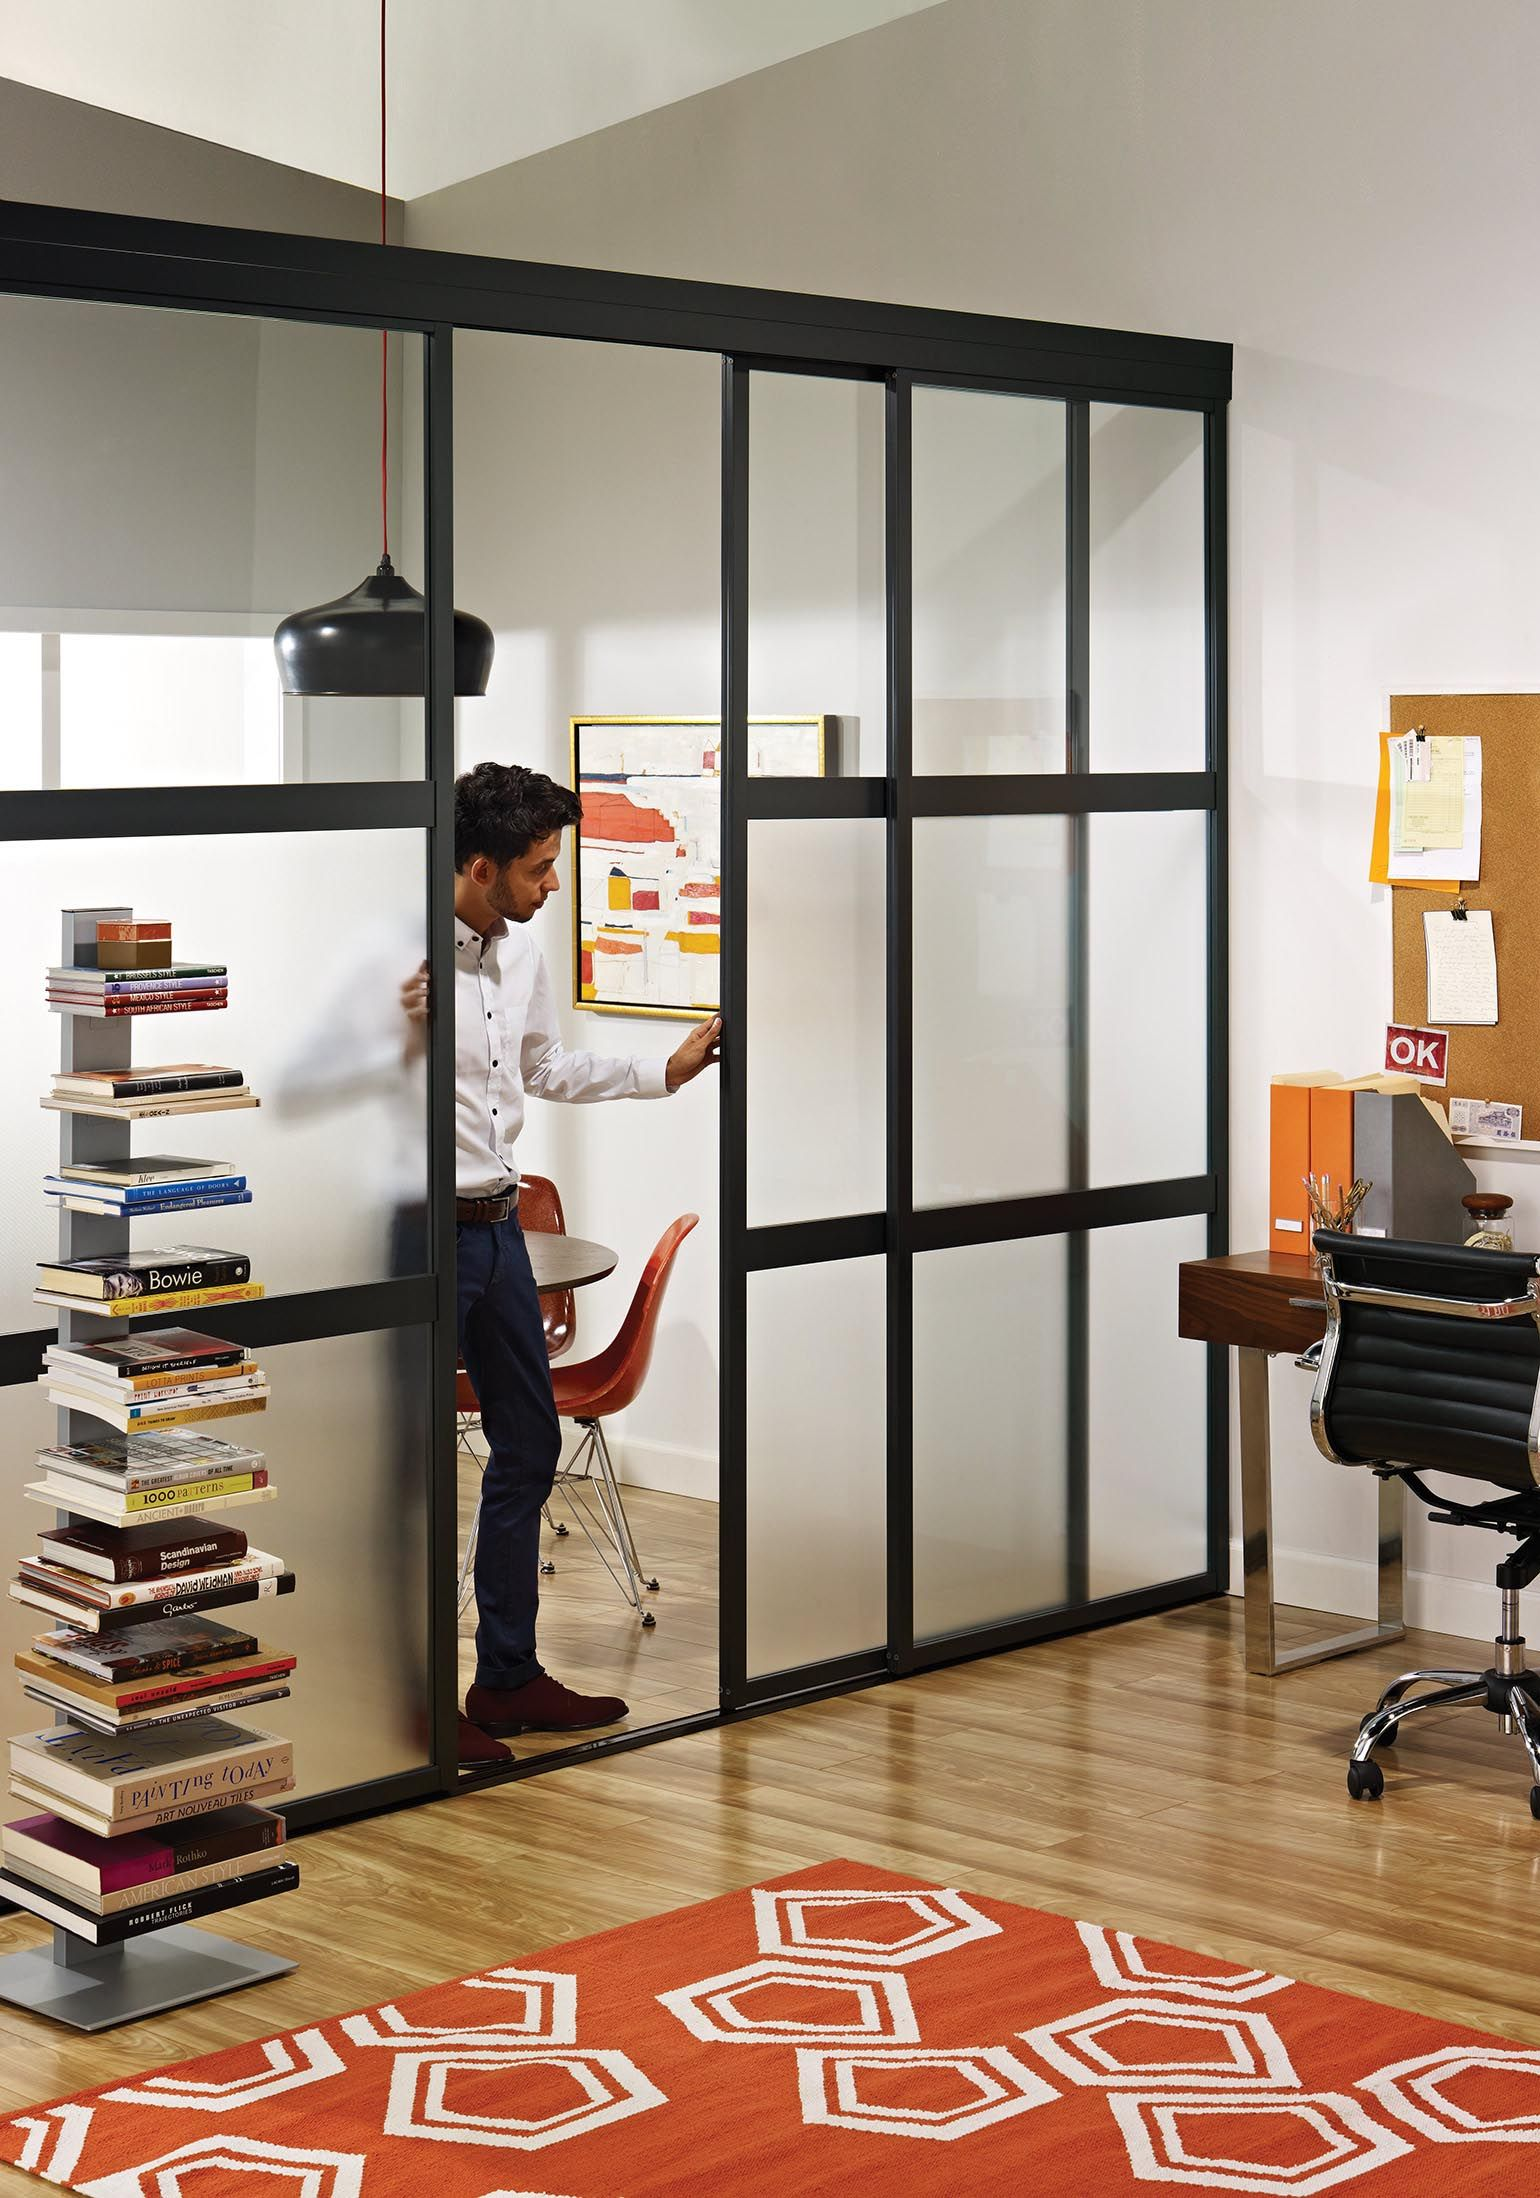 non insulated dividers attachment honeycomb cores black warping patented oak images room and sliding deadening application panels door sound insulate media customer